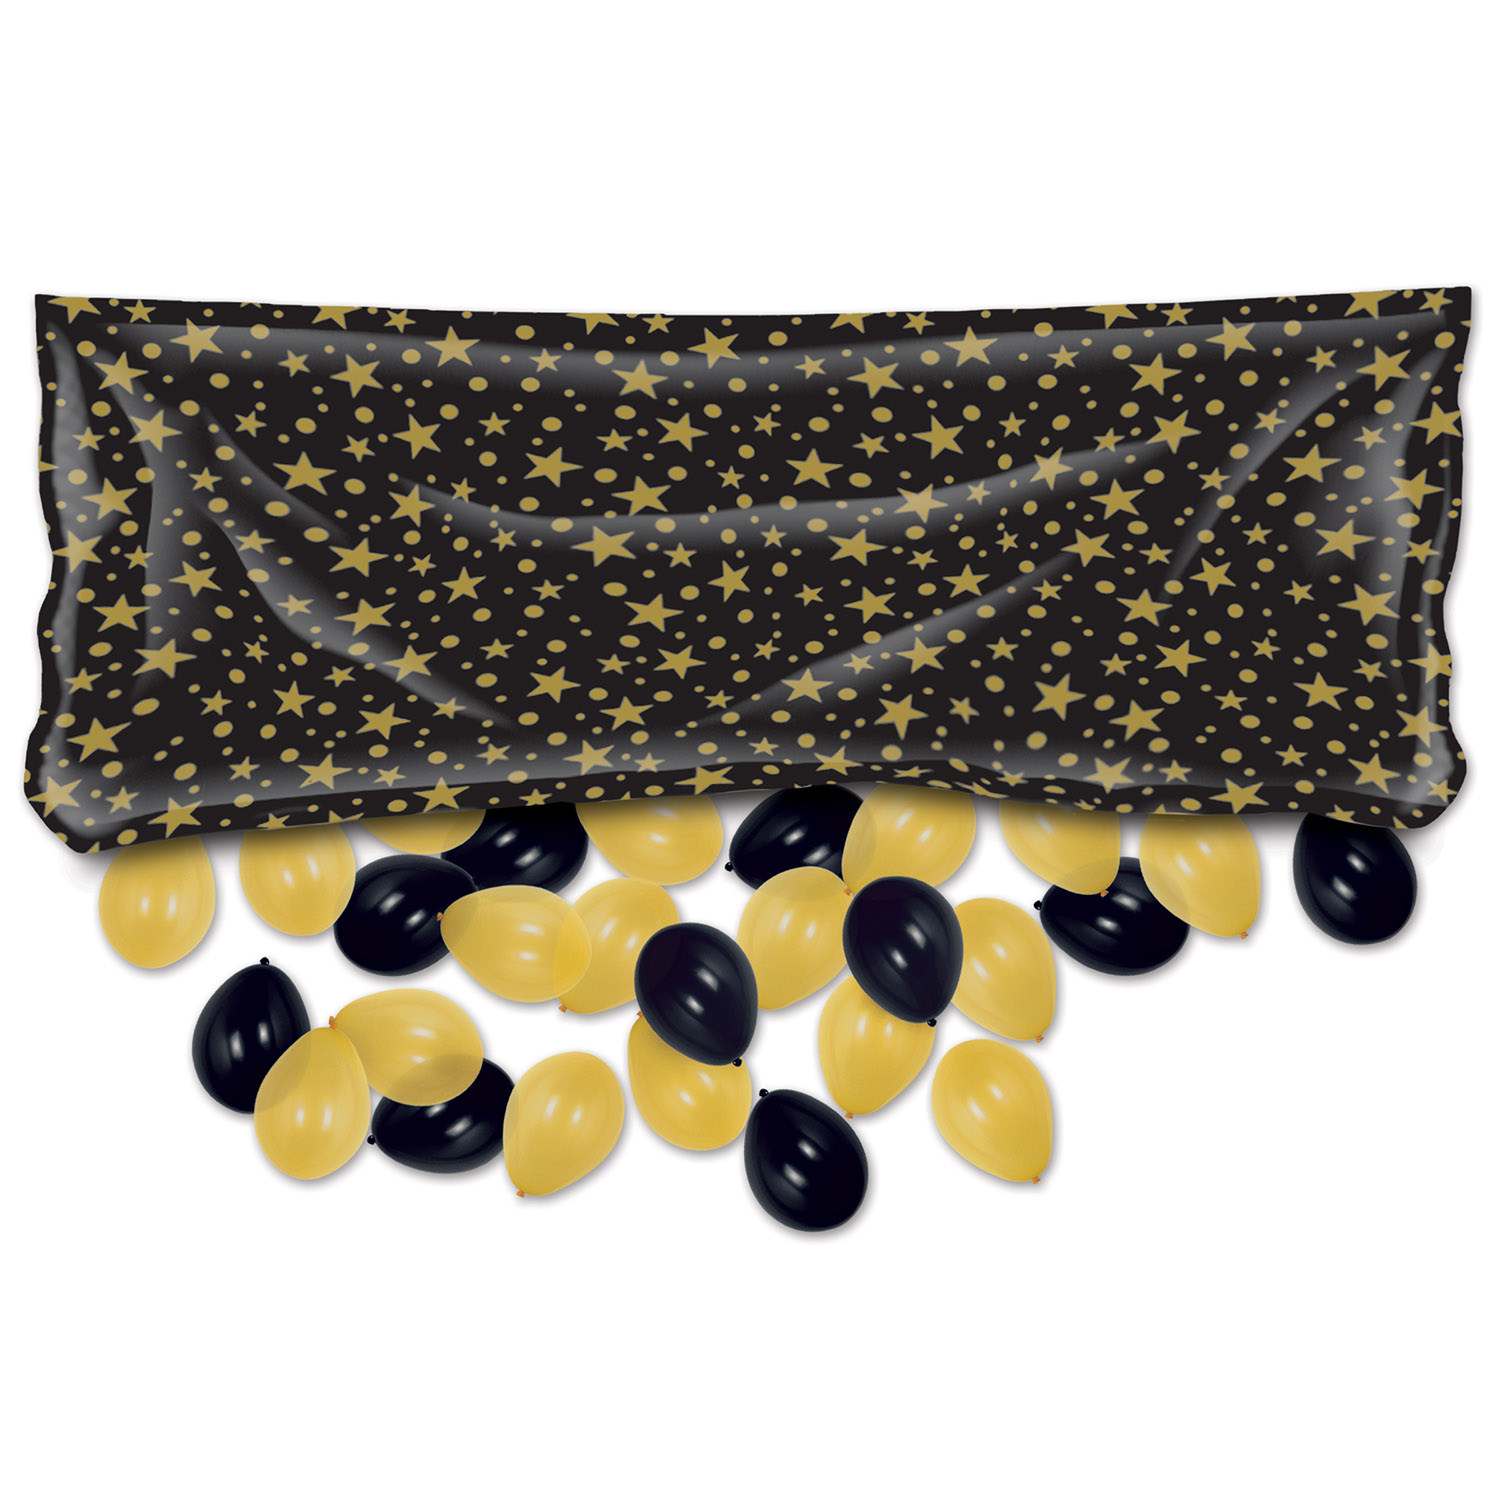 Plastic Balloon Bag w/Balloons (Pack of 1) plastic, balloon, bag, balloons, confetti, black, gold, new years eve, midnight, celebration, stars, wholesale, inexpensive, bulk